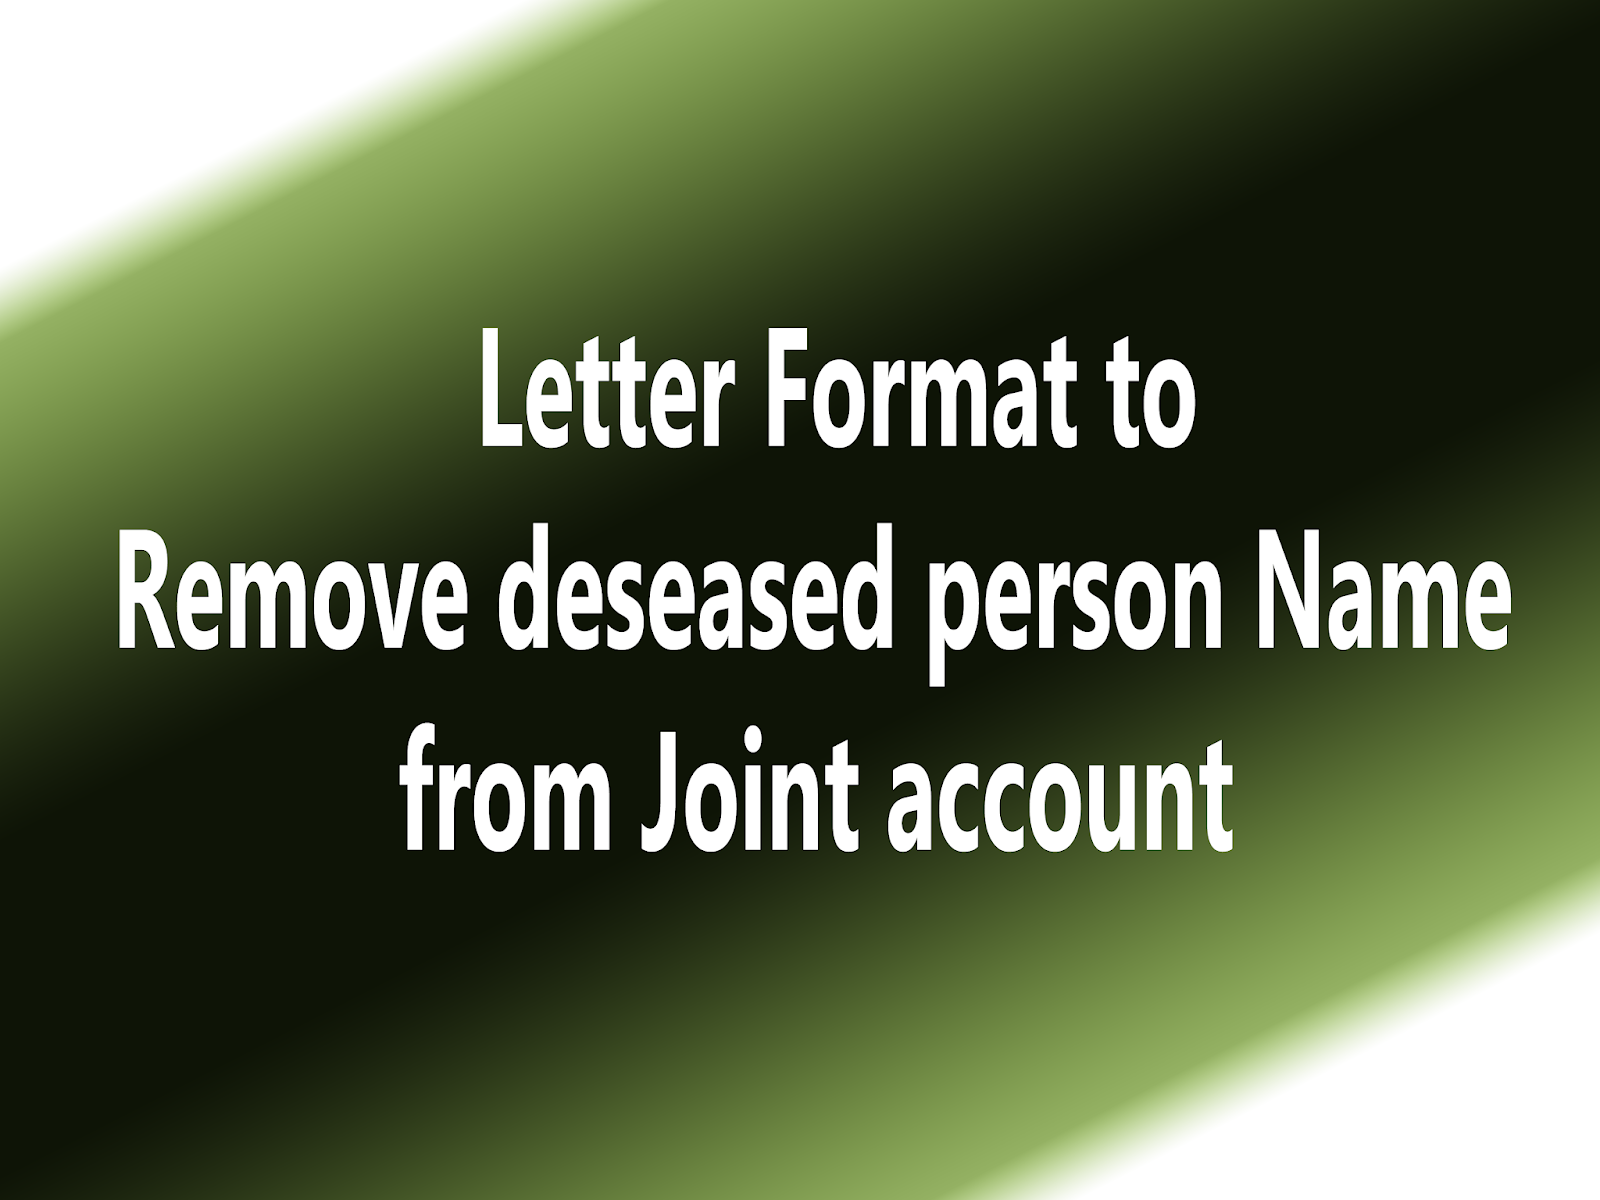 Sample letter to bank for deleting the deceased account holder from letter format to bank for deleting the deceased account holder from joint account spiritdancerdesigns Images